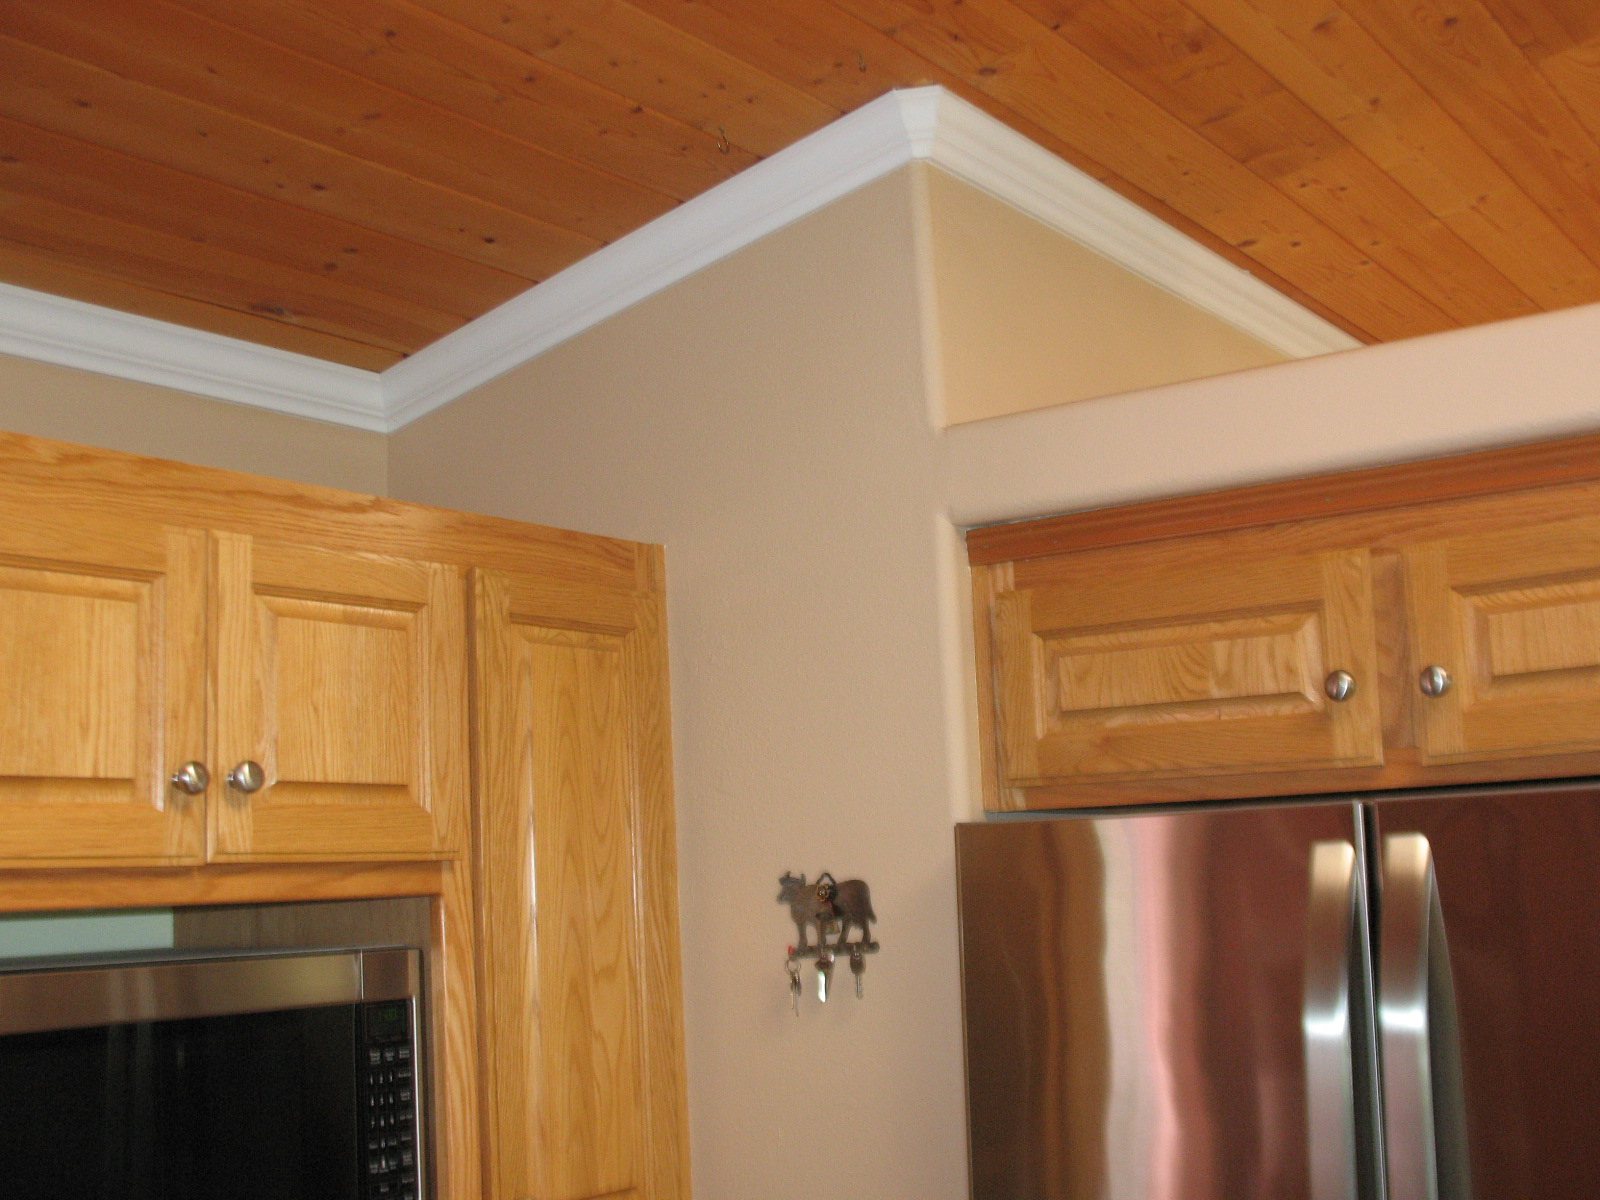 Crown molding 7 gawley building remodeling inc for Oak crown molding for kitchen cabinets